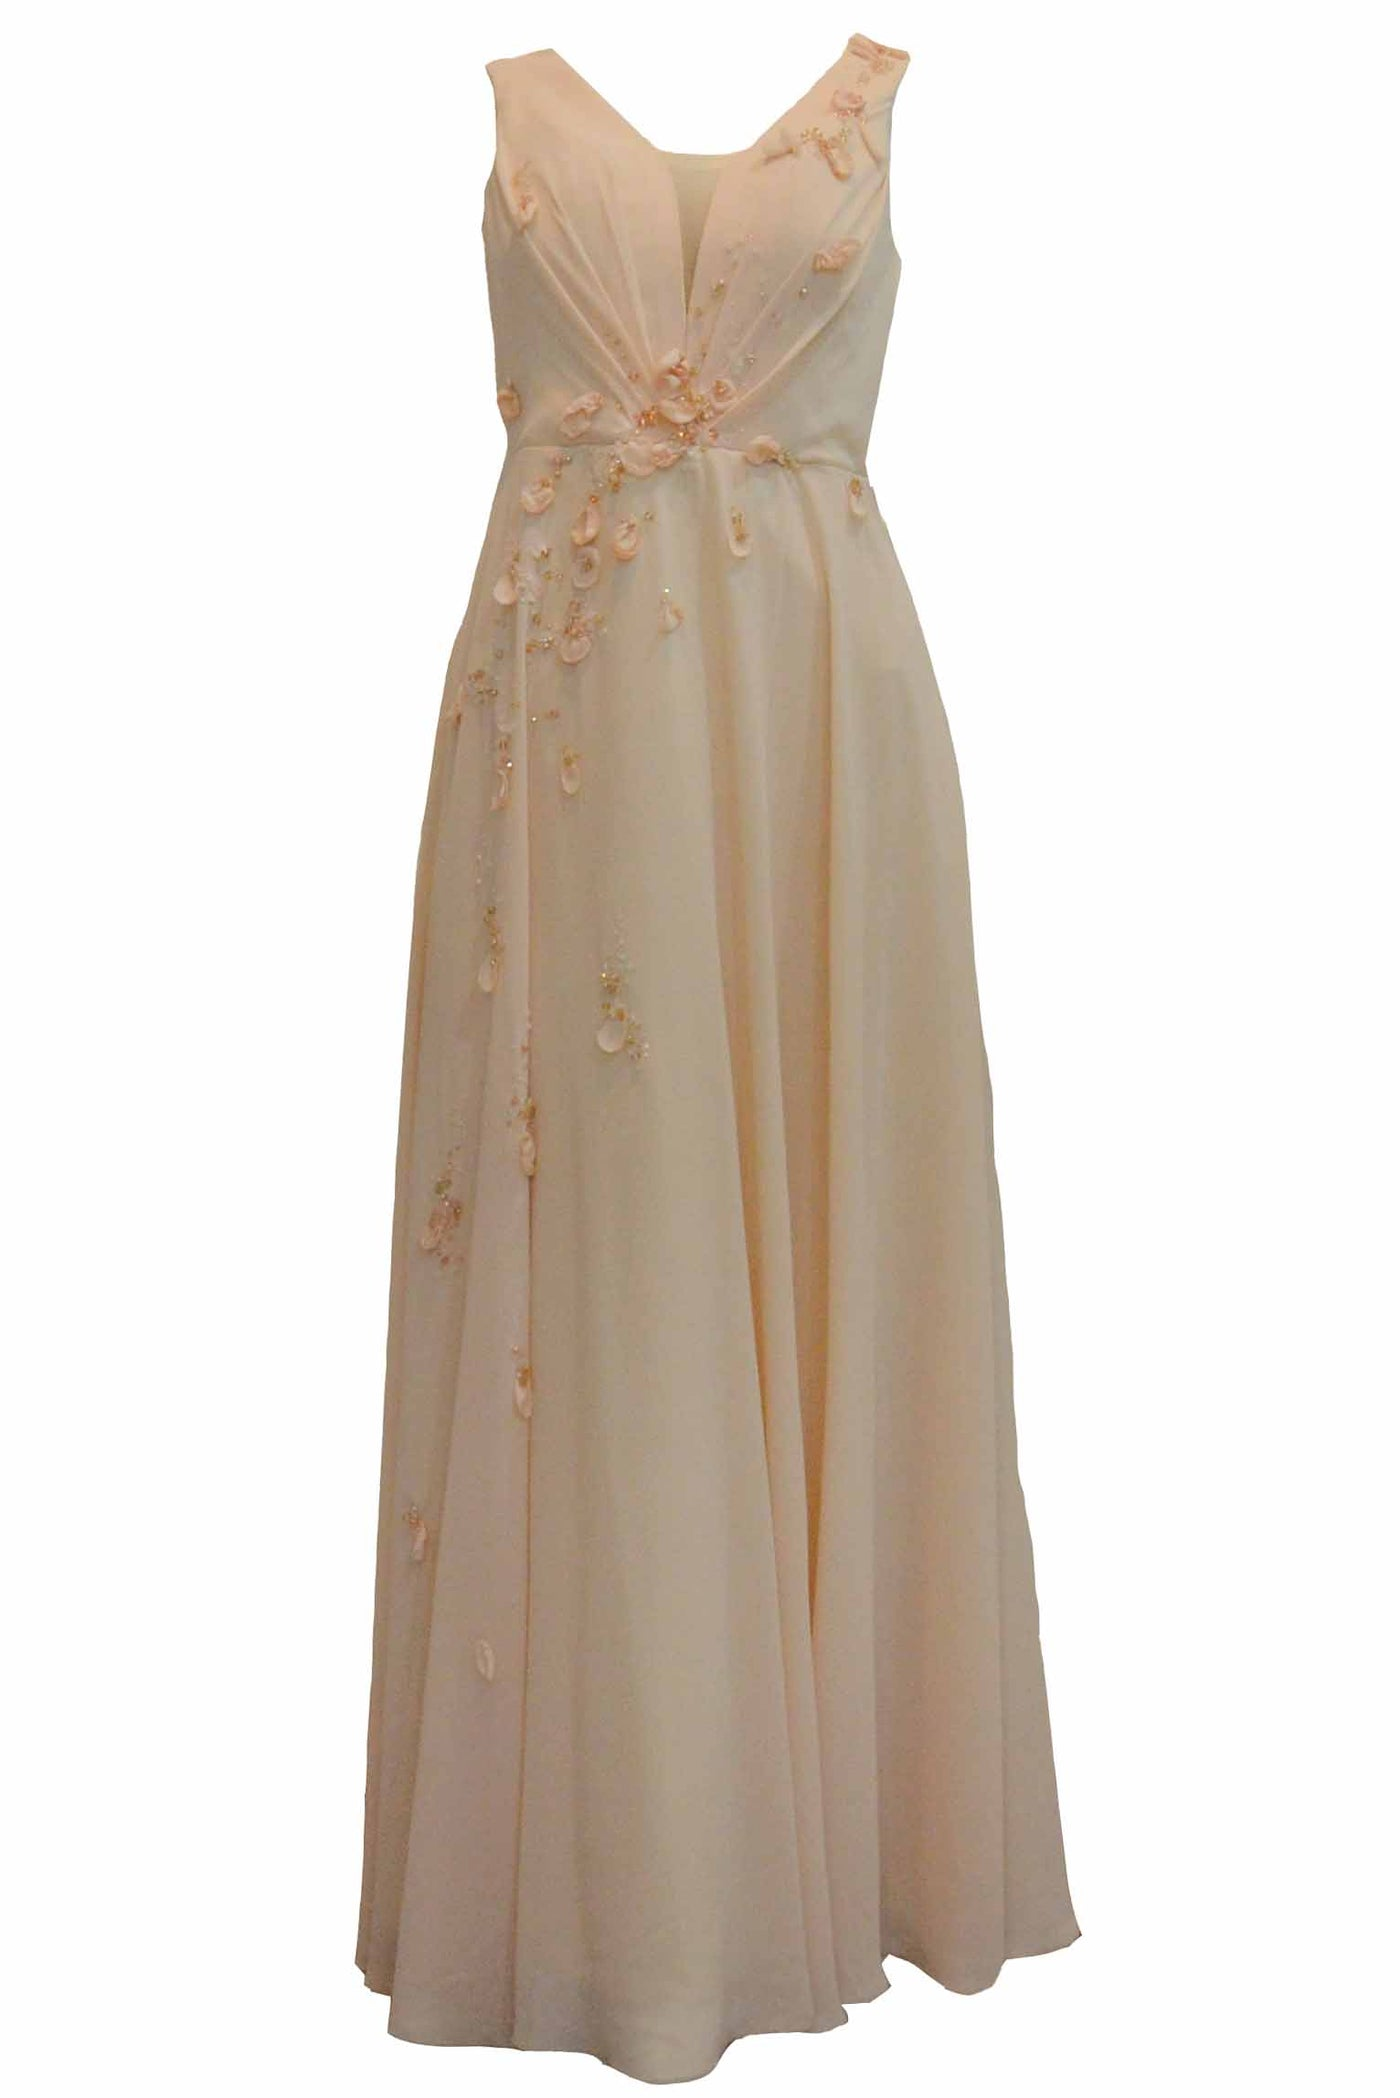 Rent : Janette J - Peach Sleeveless V Neck Gown